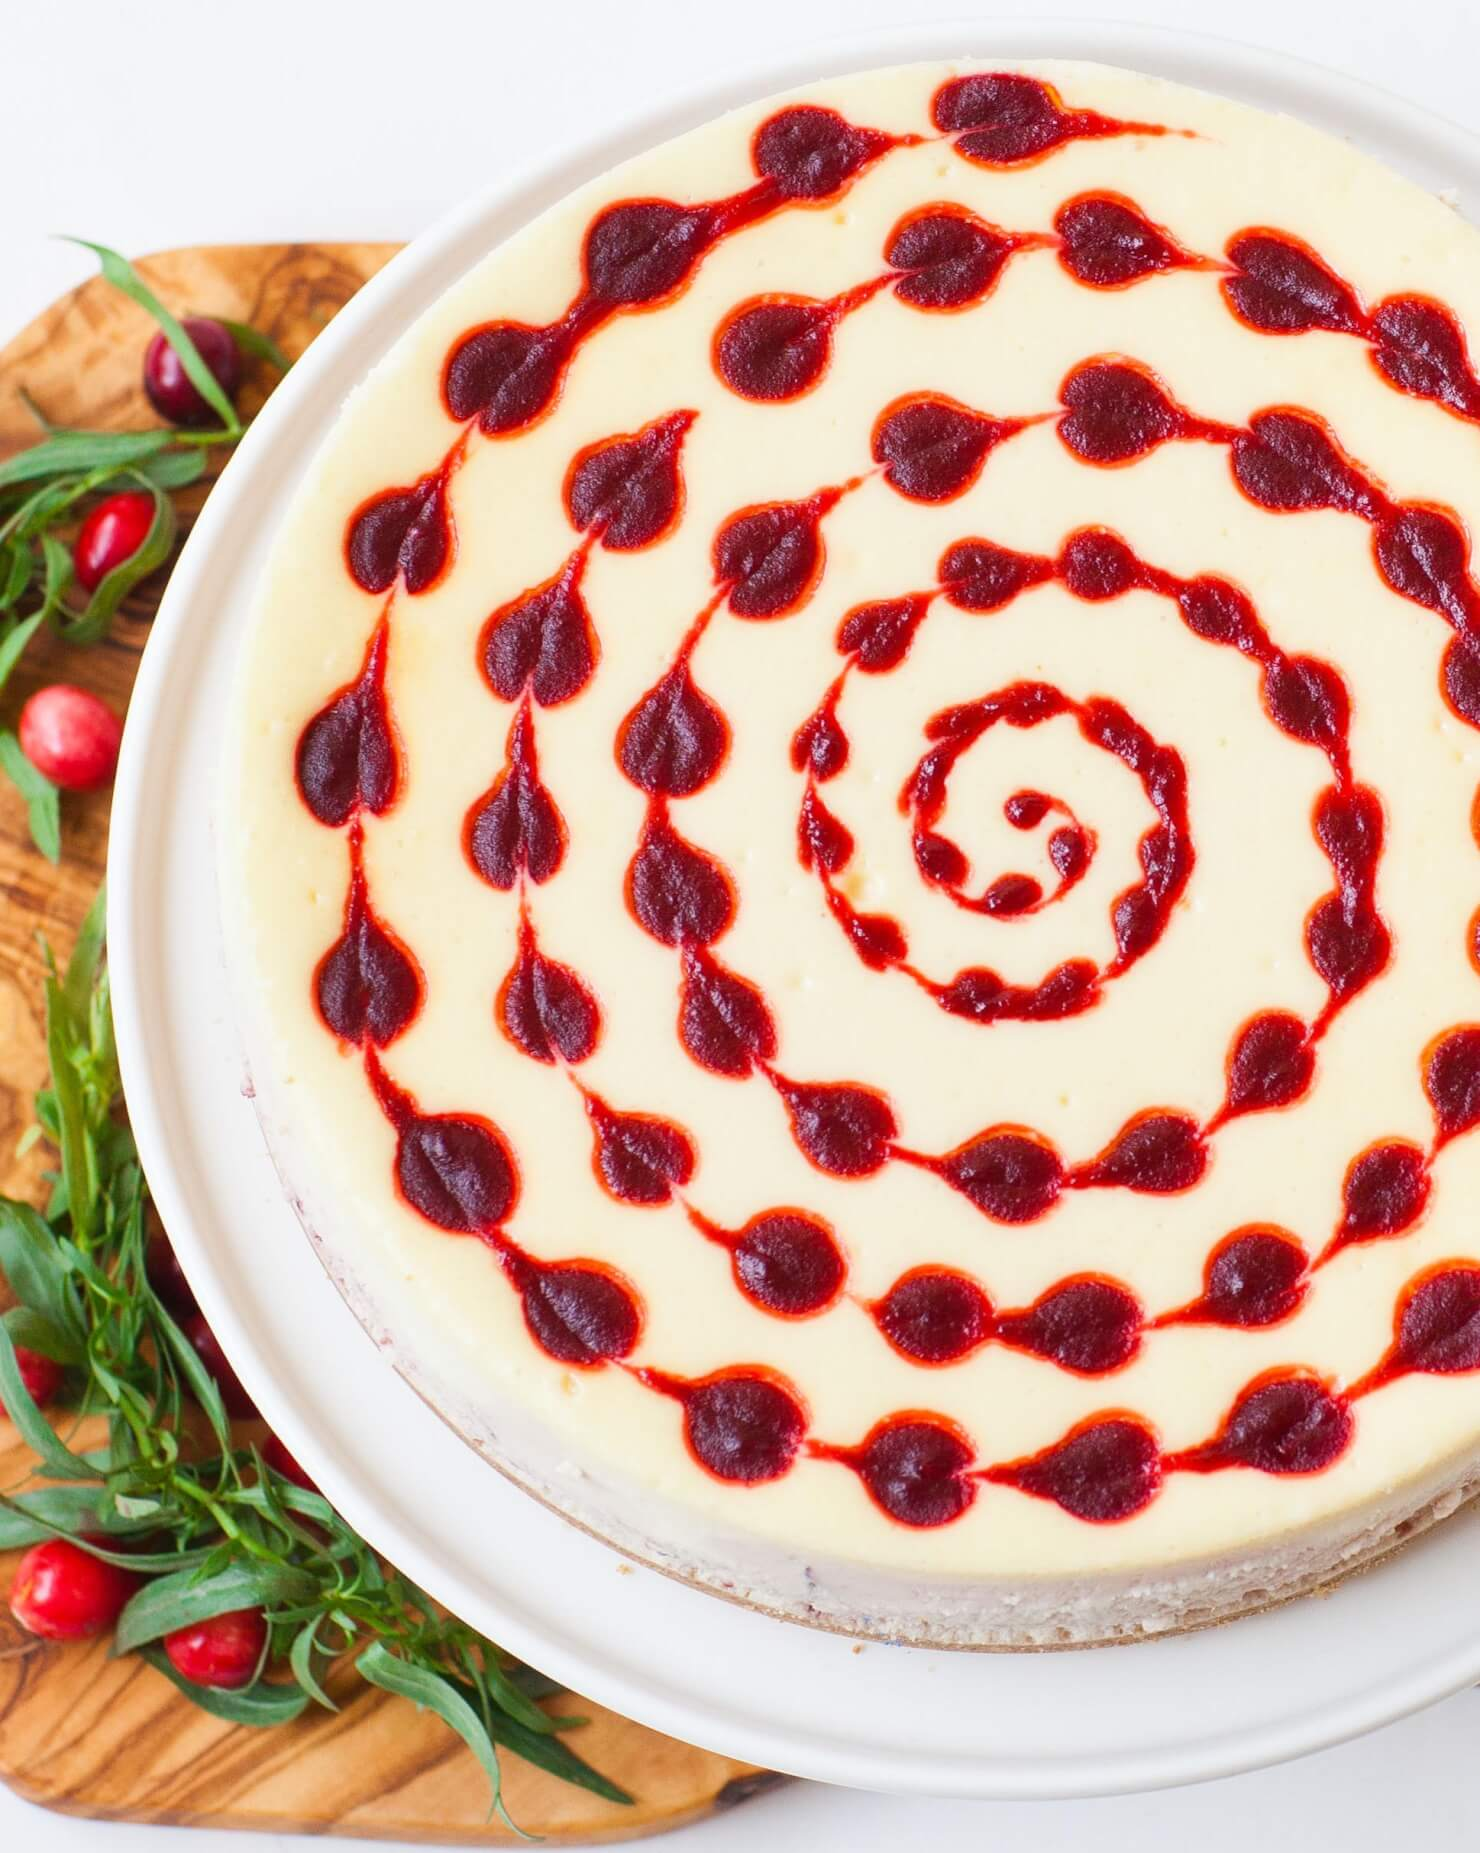 cranberry cheesecake with swirled cranberry sauce